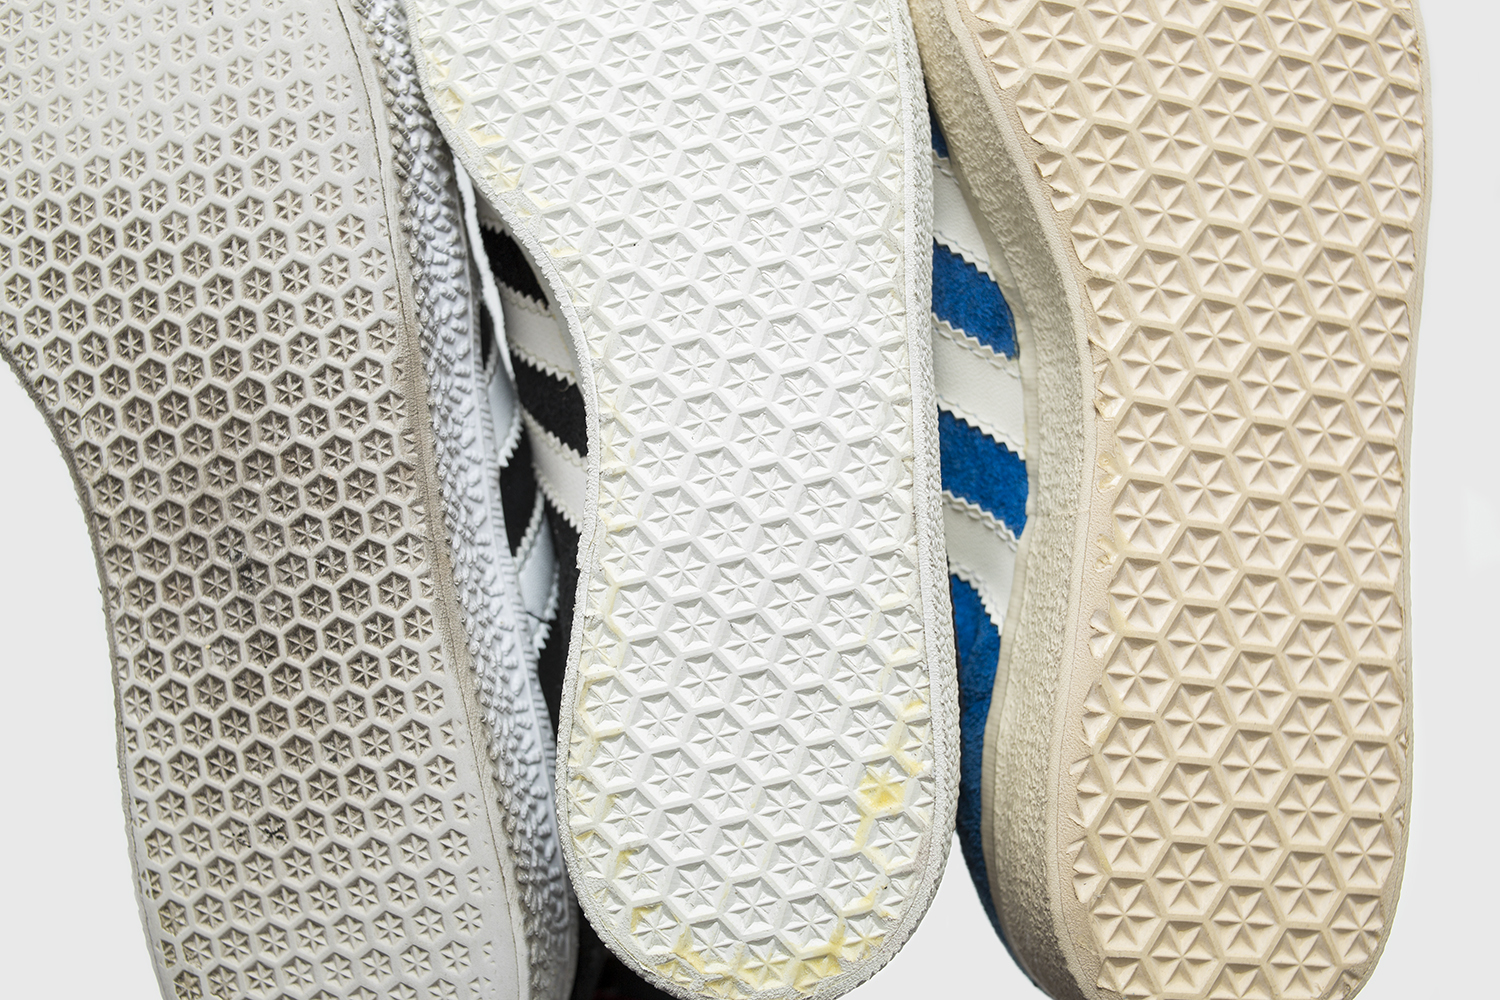 size_HQ_Lockup_adidas_originals_gazelle-10